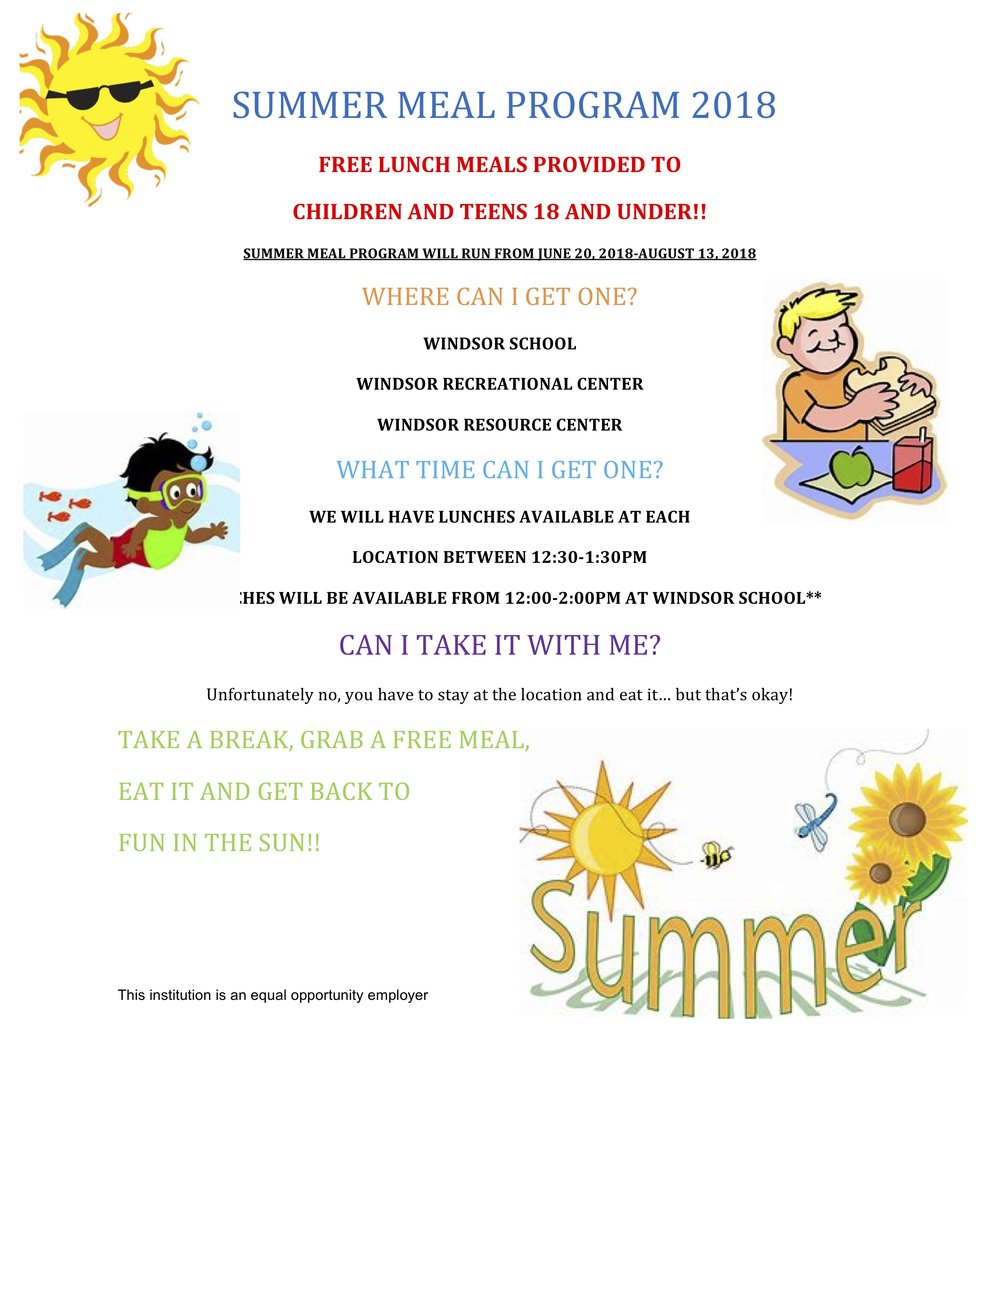 SUMMER MEAL PROGRAM 2018.jpg